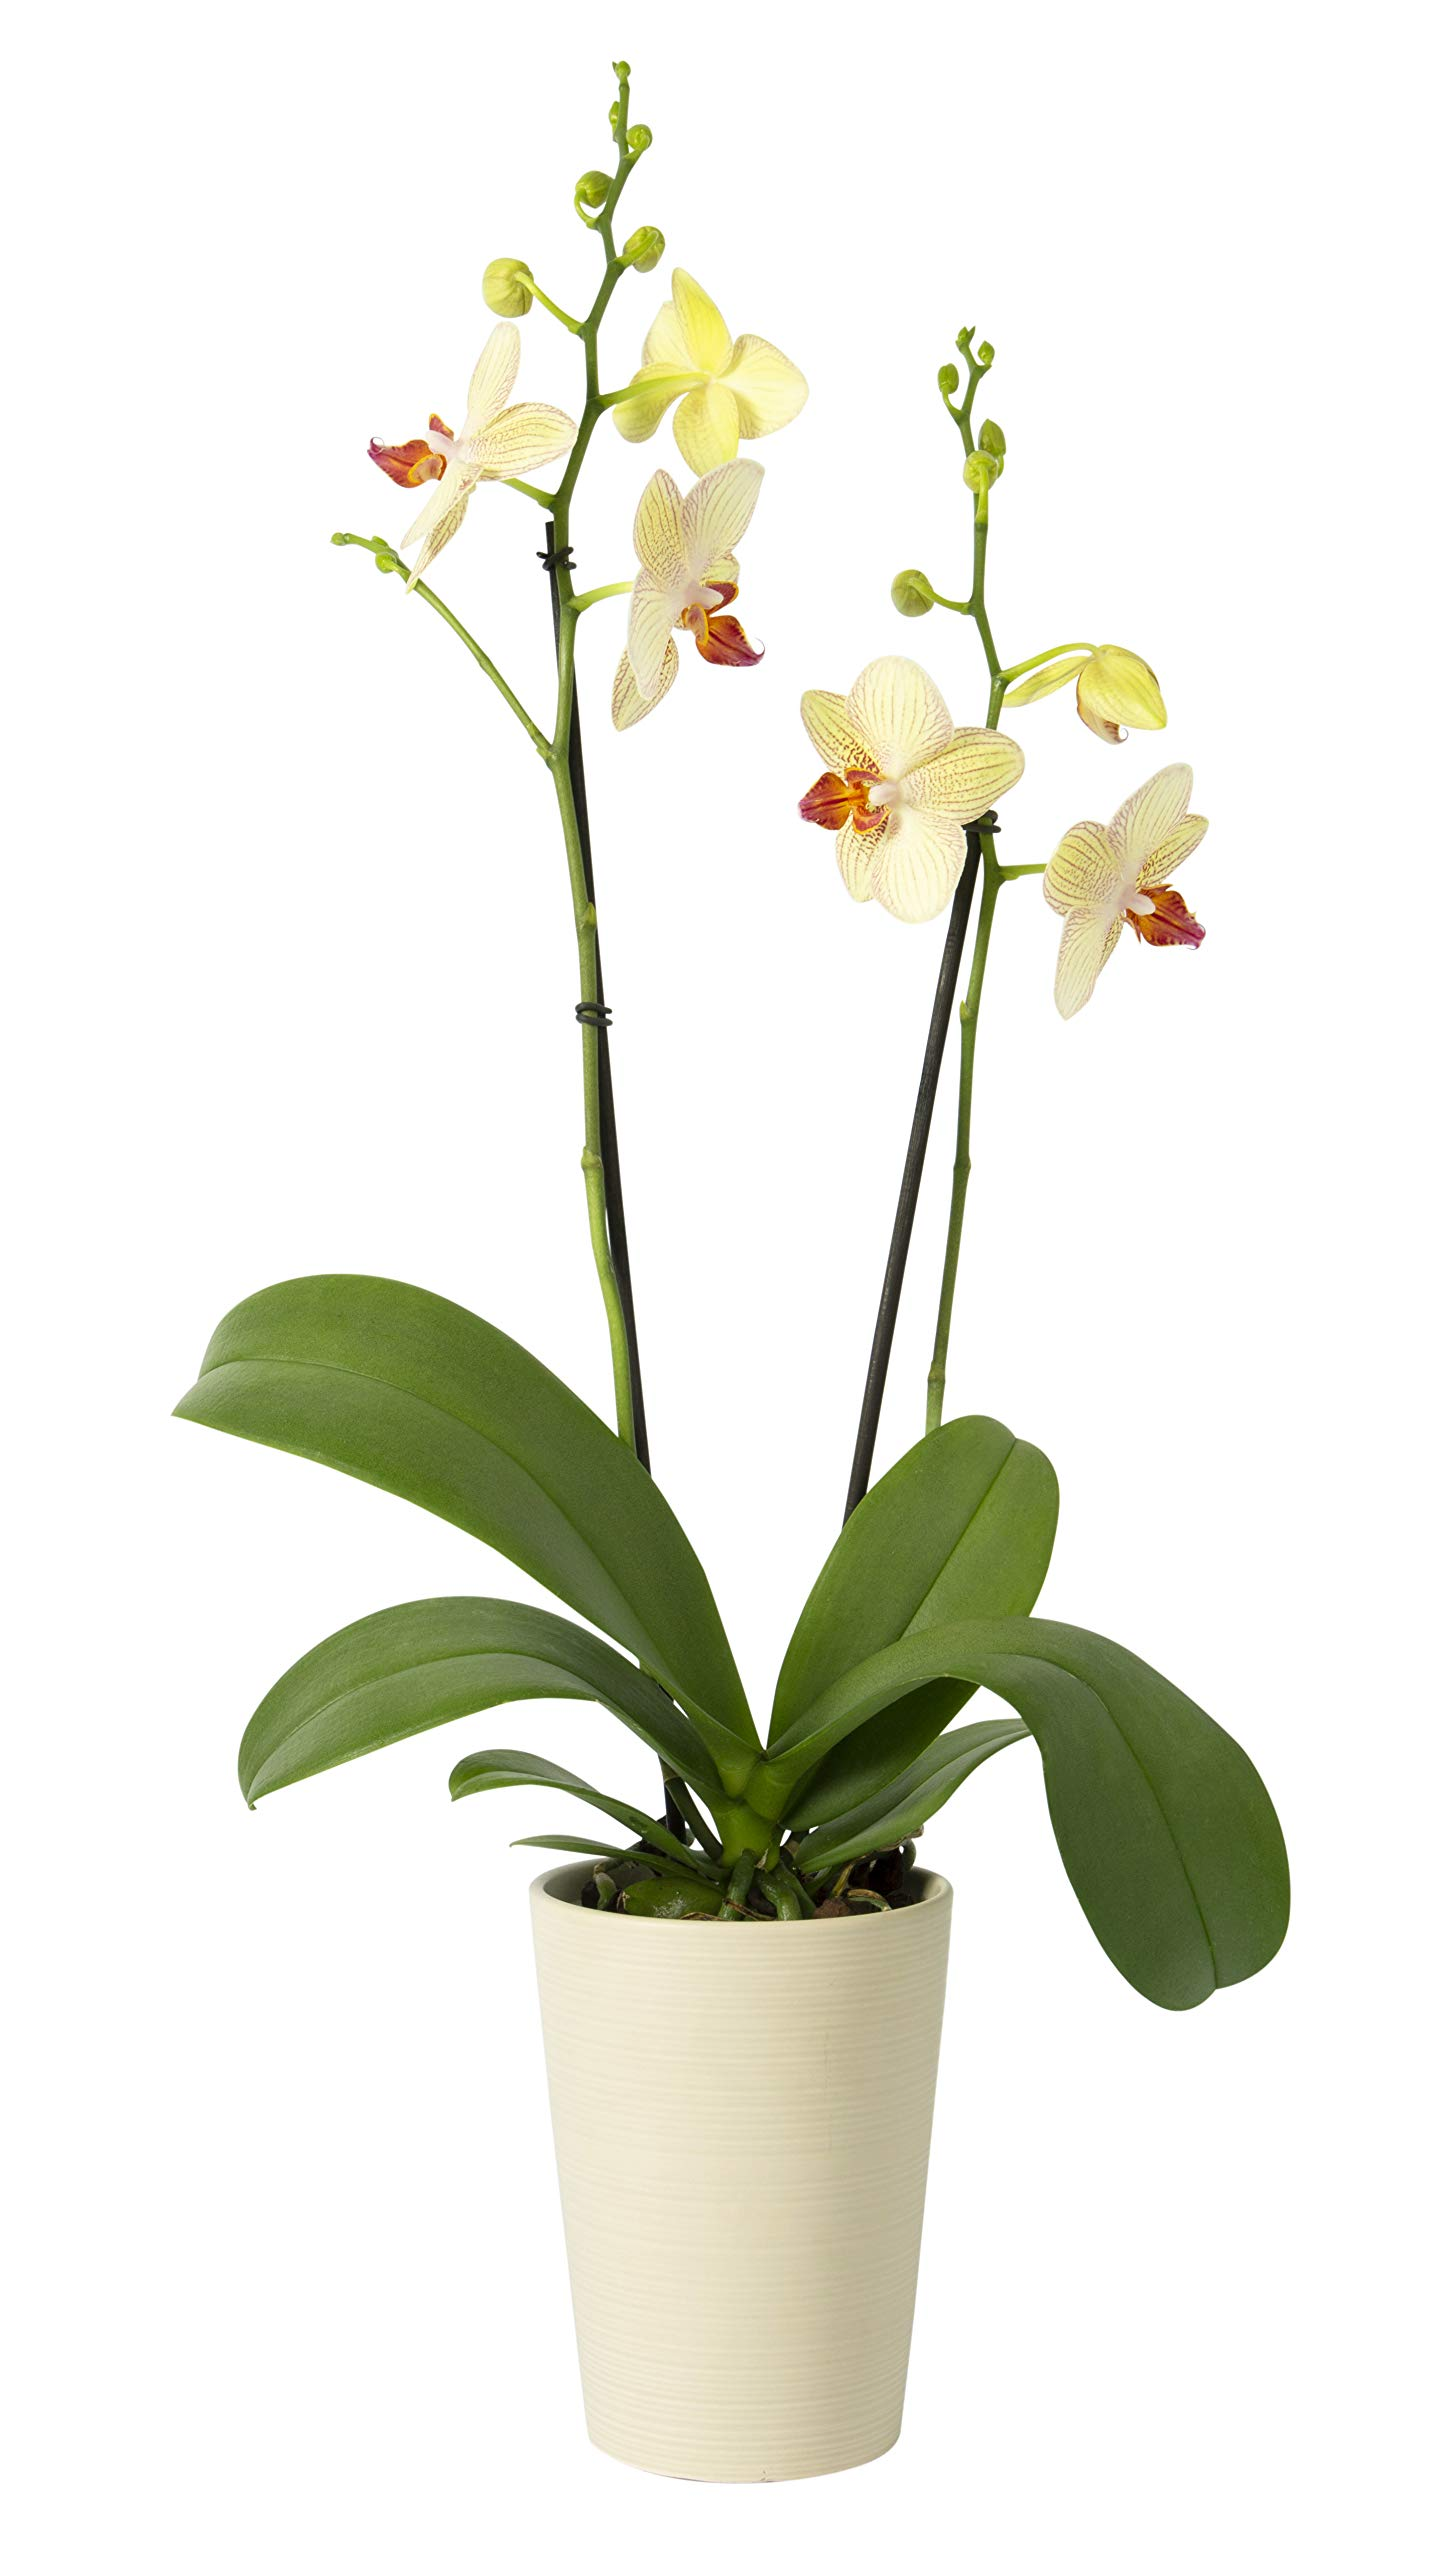 Color Orchids Live Blooming Double Stem Phalaenopsis Orchid Plant in Ceramic Pot, 20''-24'' Tall, Yellow Blooms